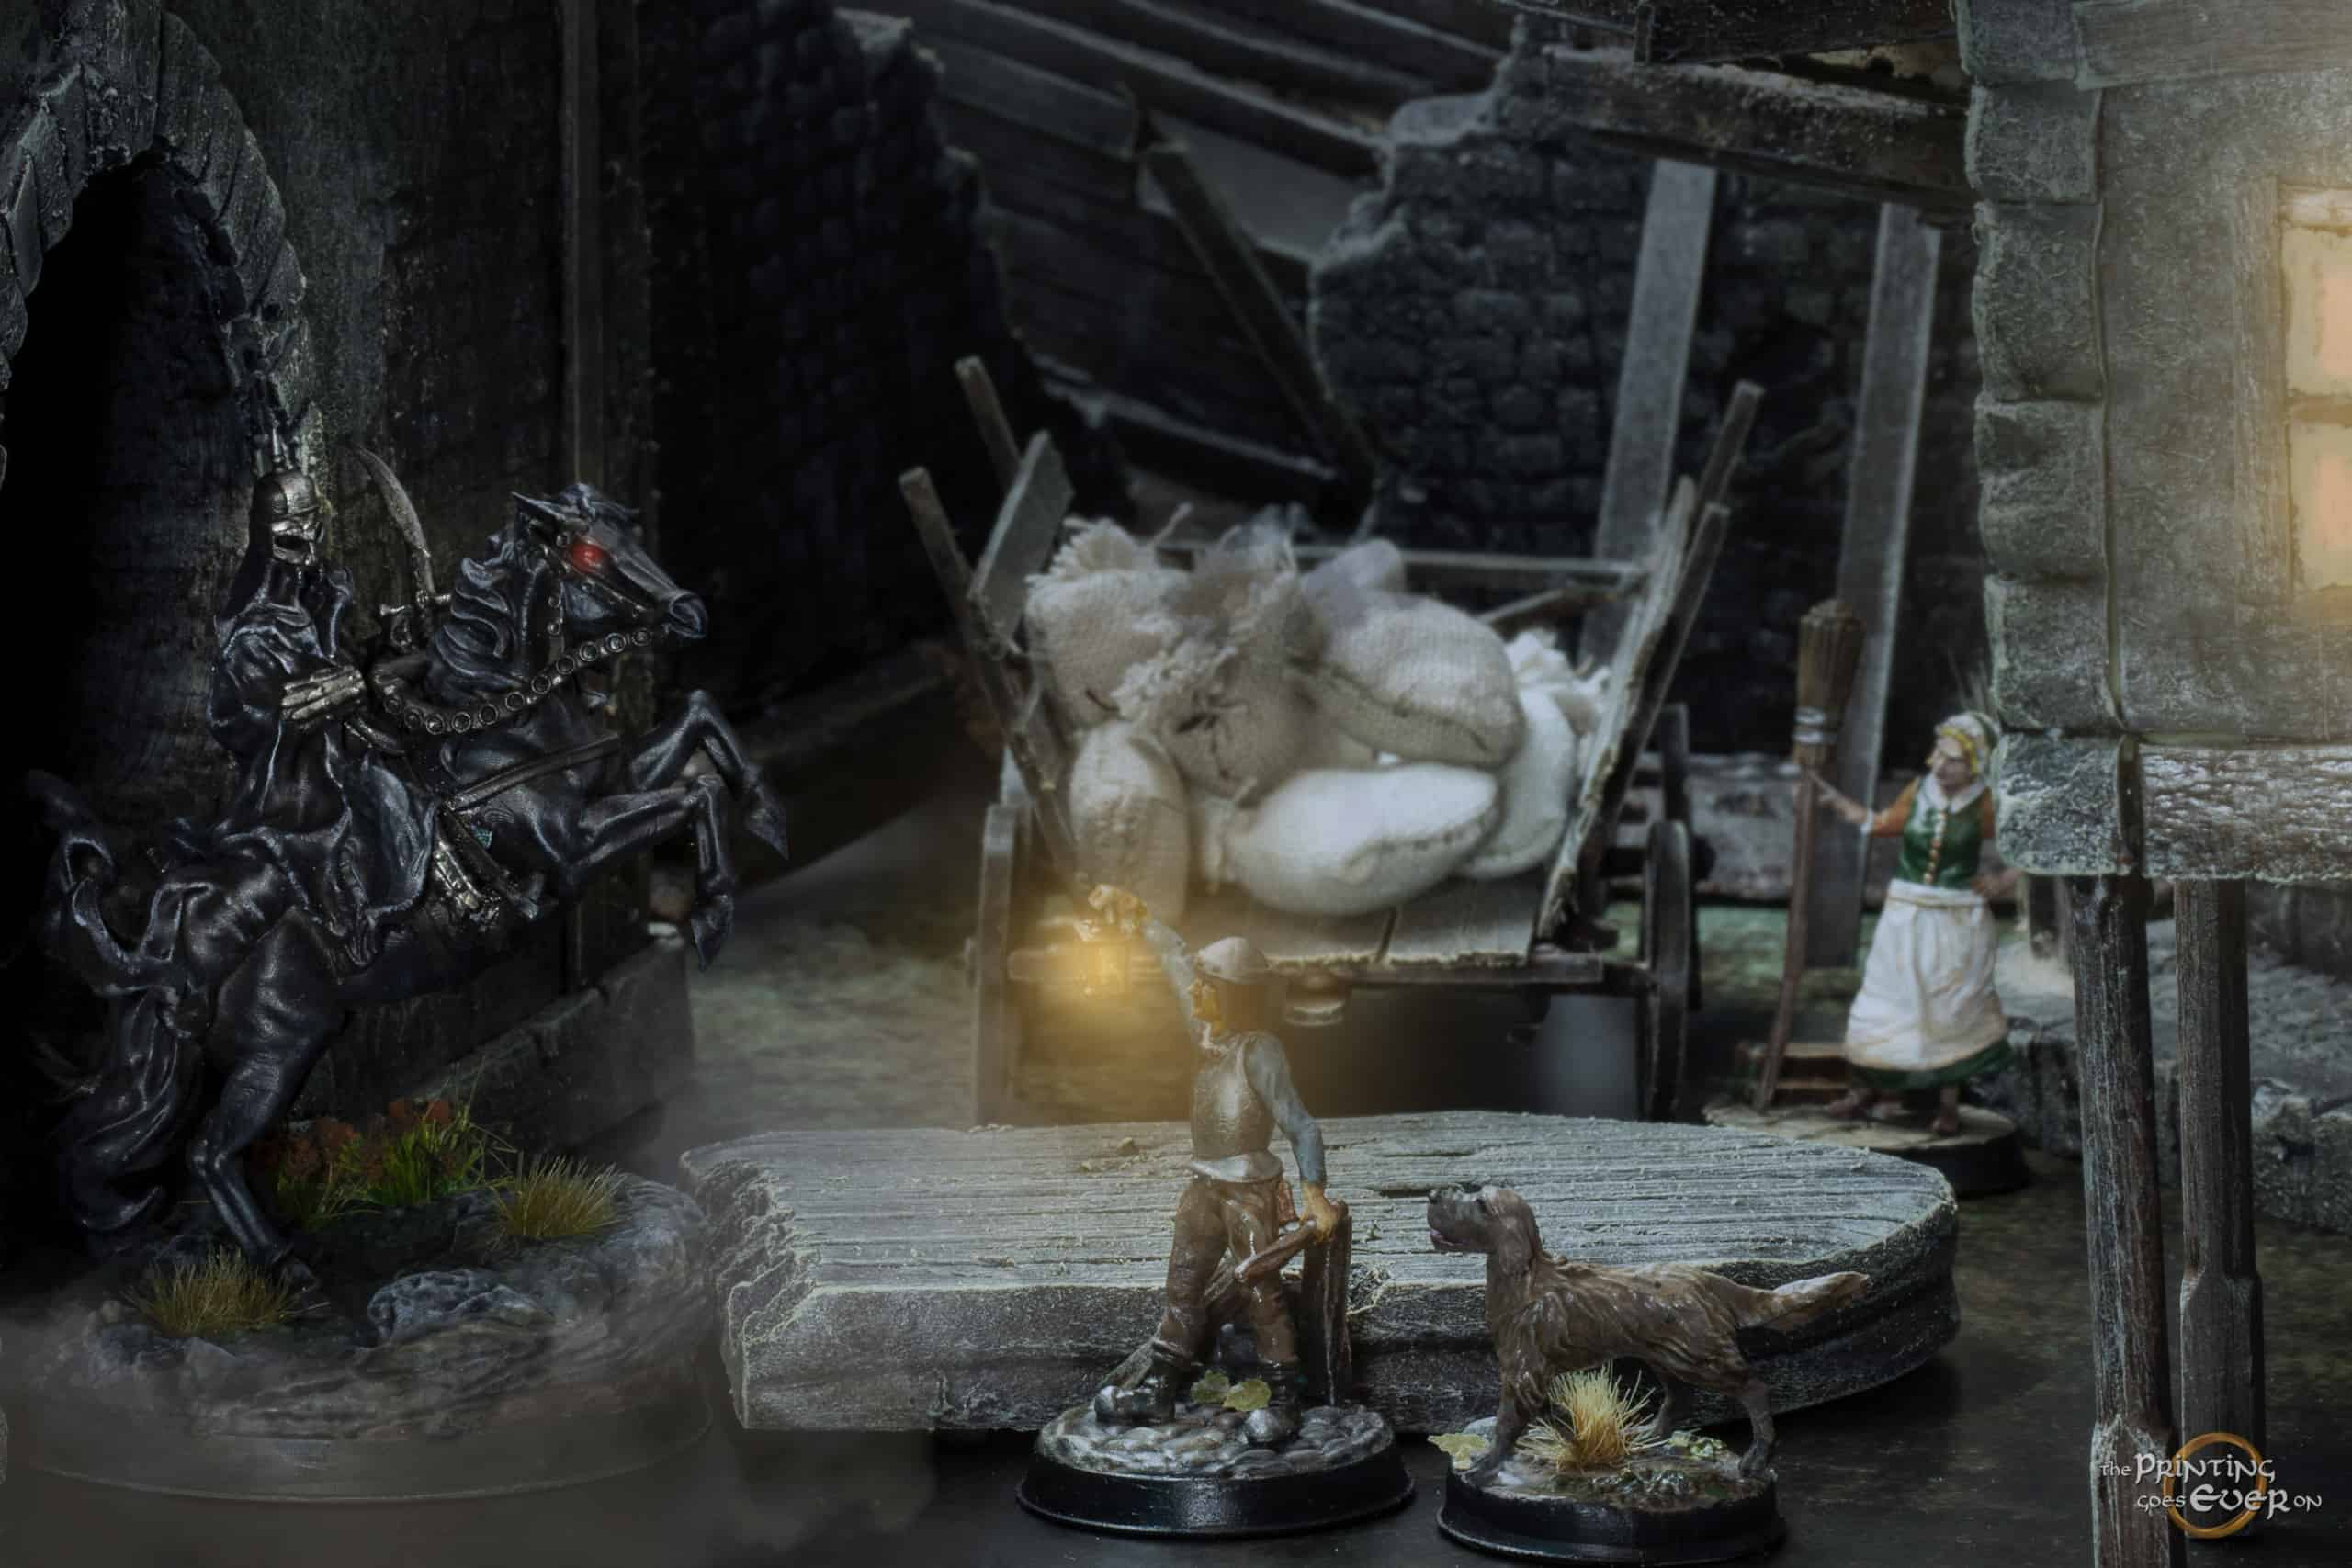 night time town scene diorama with dark rider knocking down the gate door and town guard holding his lantern up to see what is going on